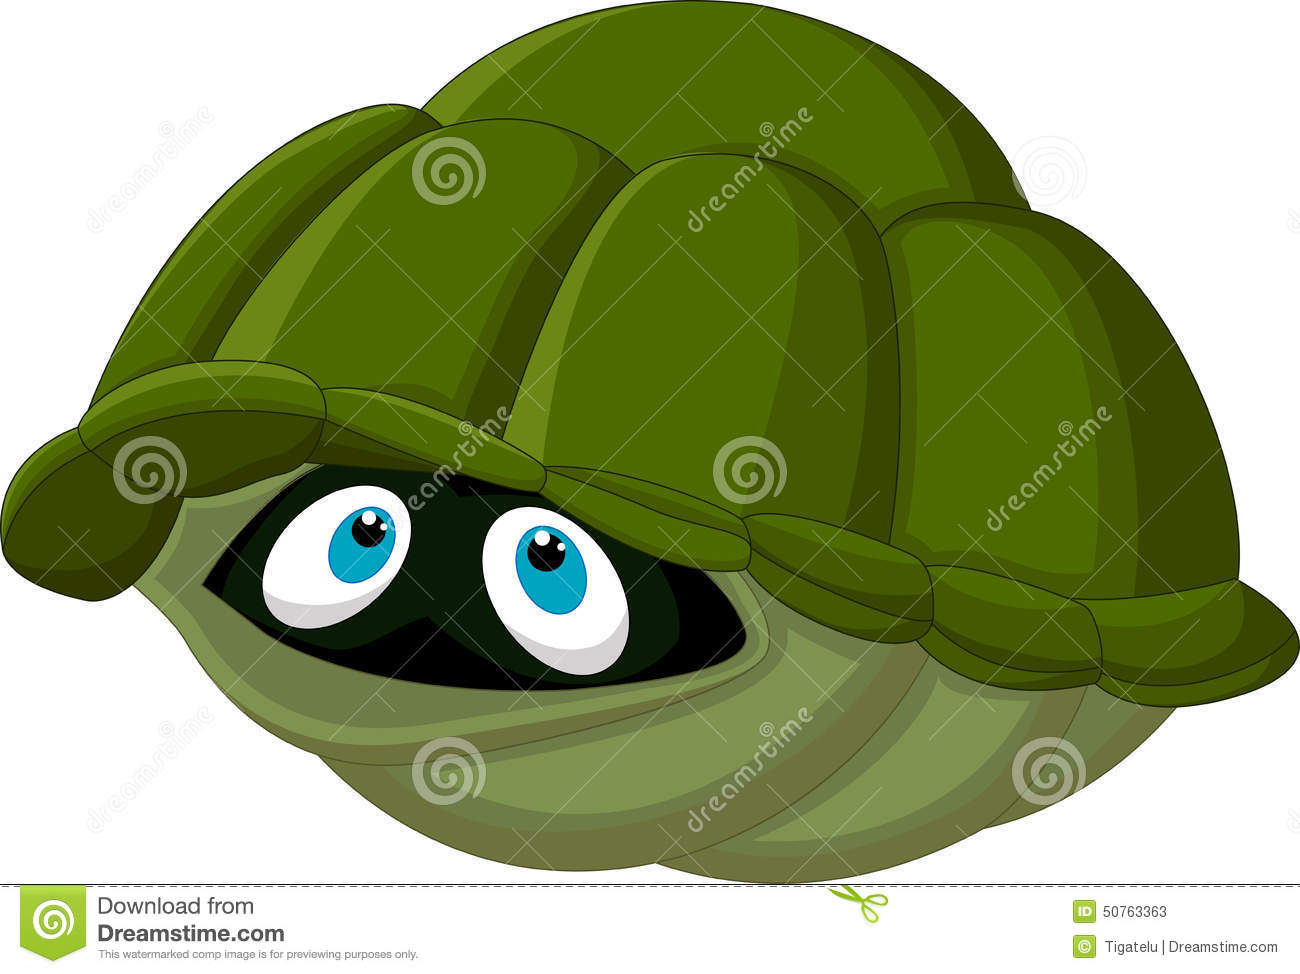 Turtle out of shell clipart.